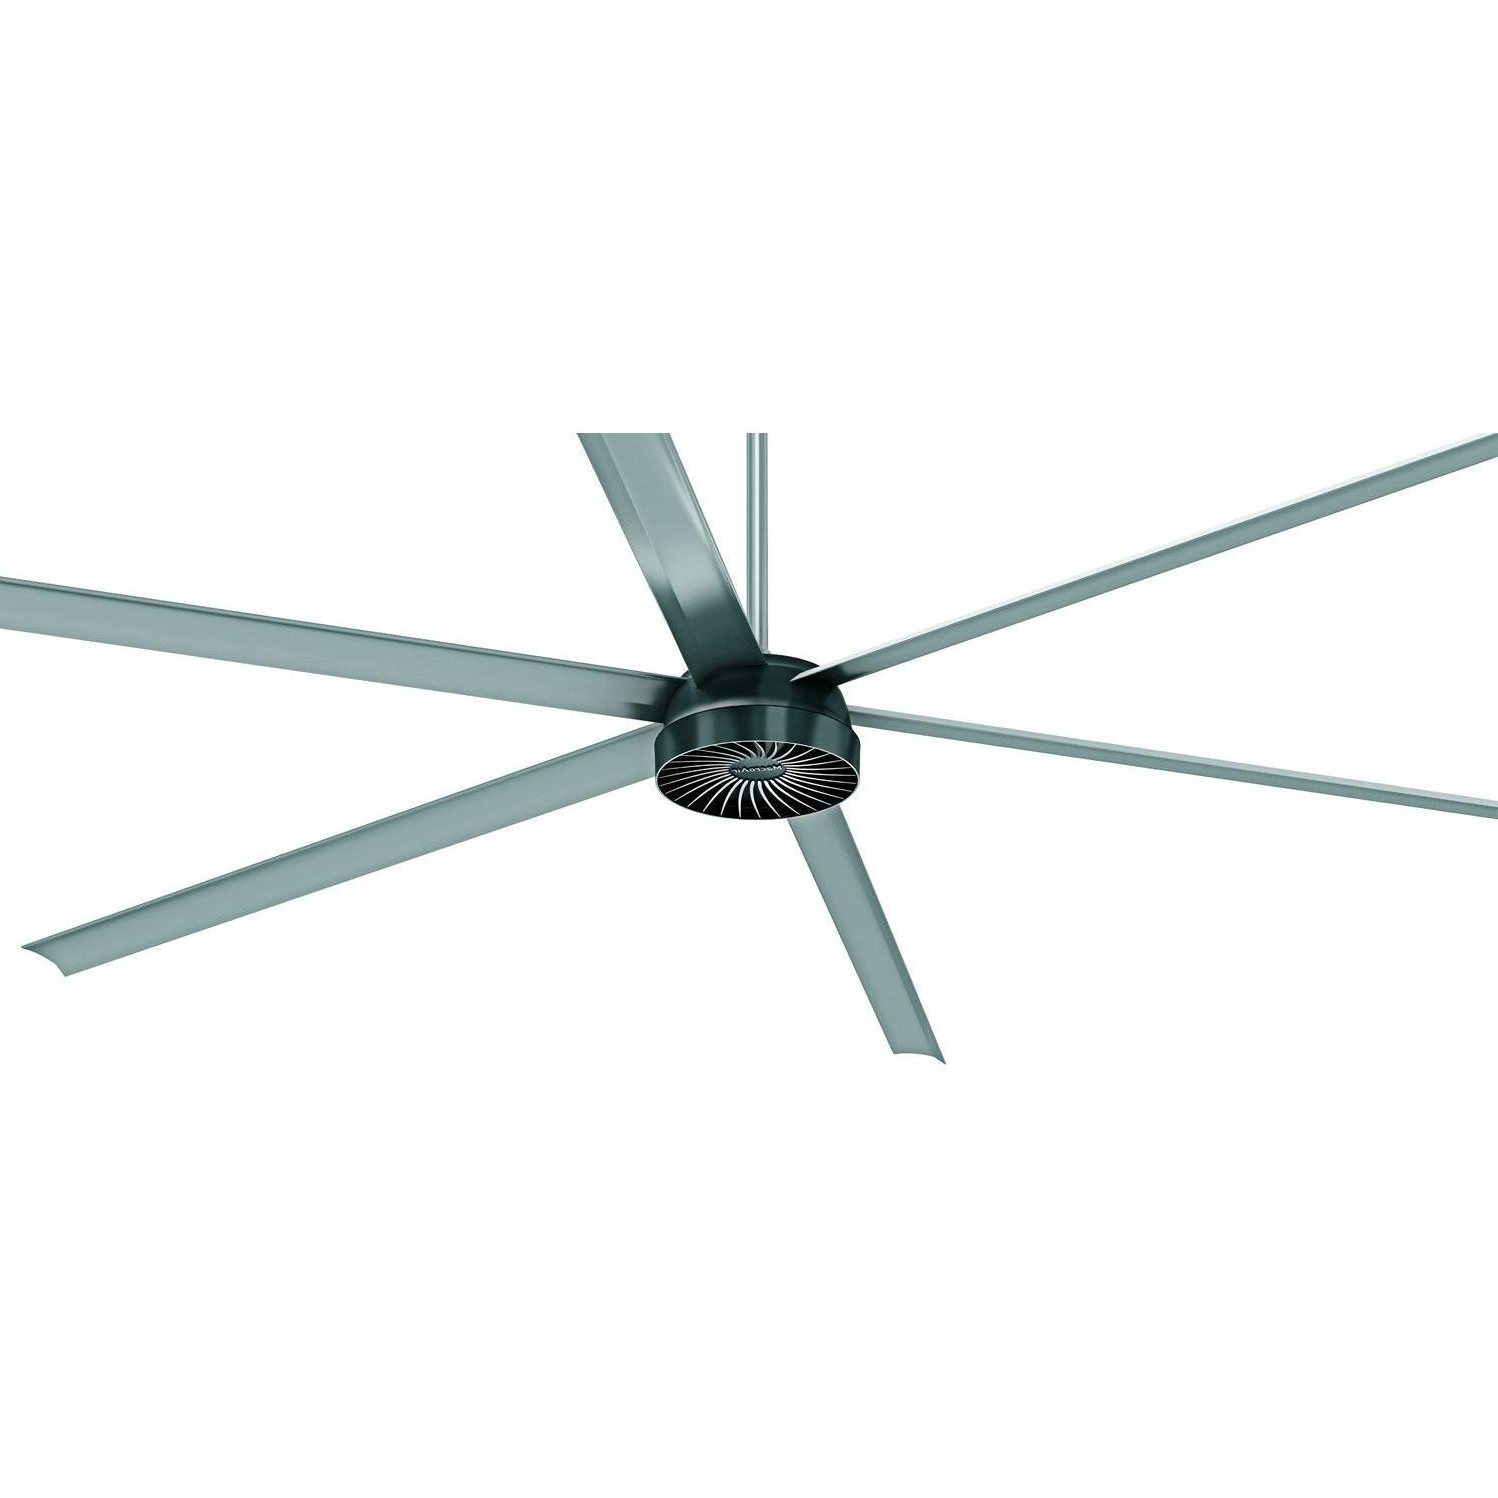 Outdoor Ceiling Fans With Aluminum Blades Intended For 2019 Macroair Airvolution D 370 10 Ft (View 12 of 20)